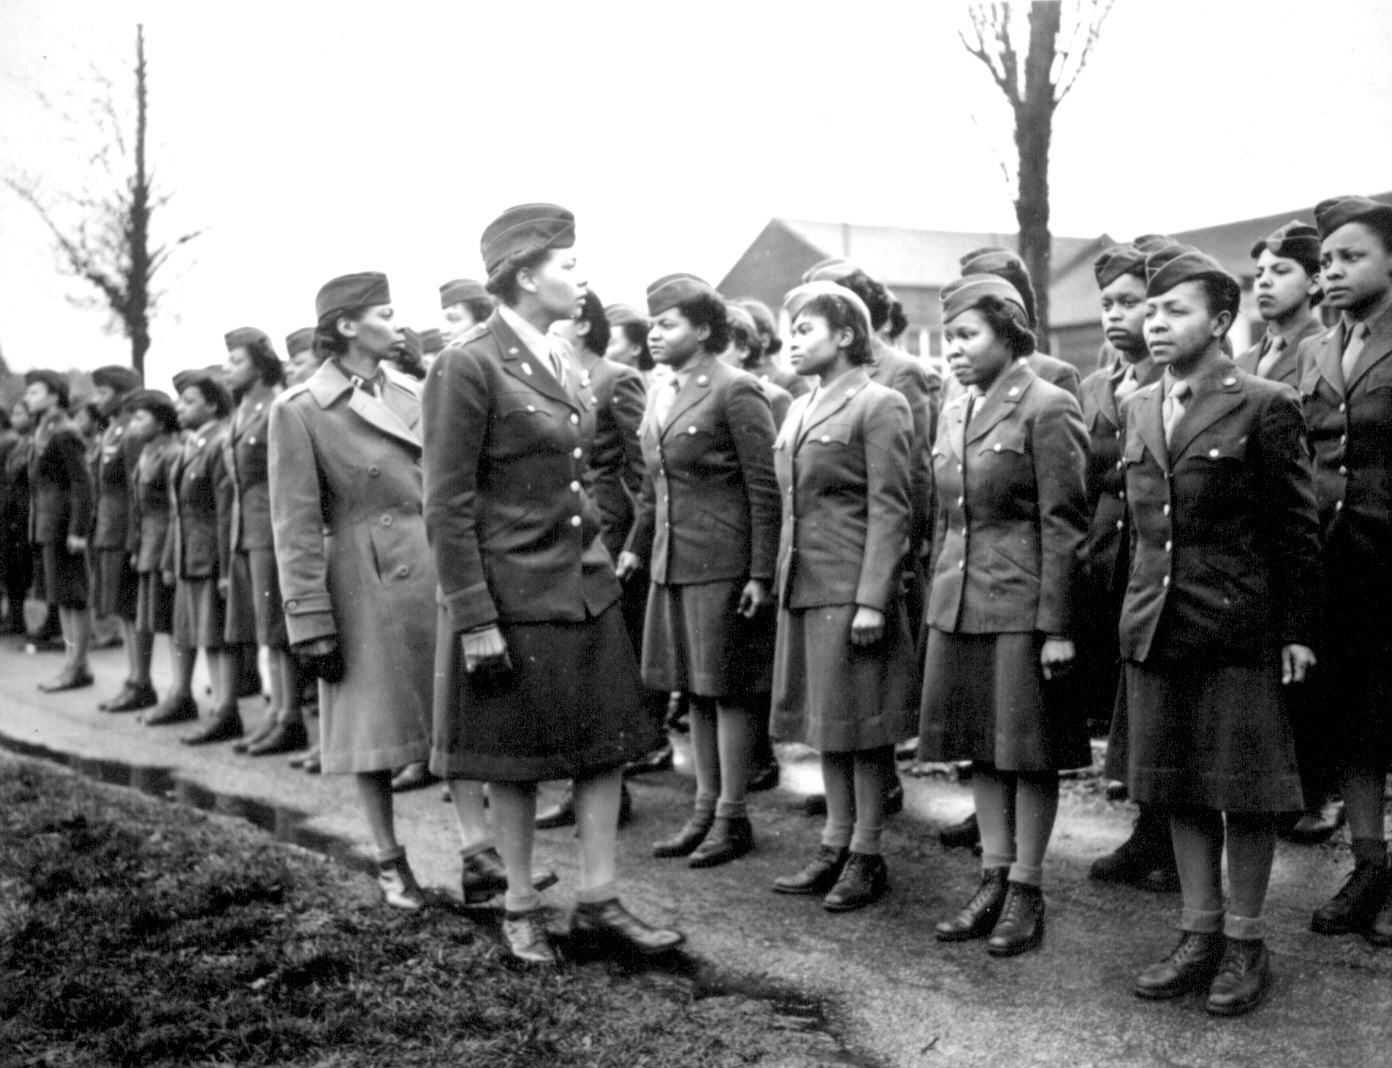 WAC Major Charity E. Adams and Captain Abbie N. Campbell inspecting members of the 6888th Central Postal Directory Battalion, England, 15 Feb 1945 (US National Archives: 111-SC-20079)